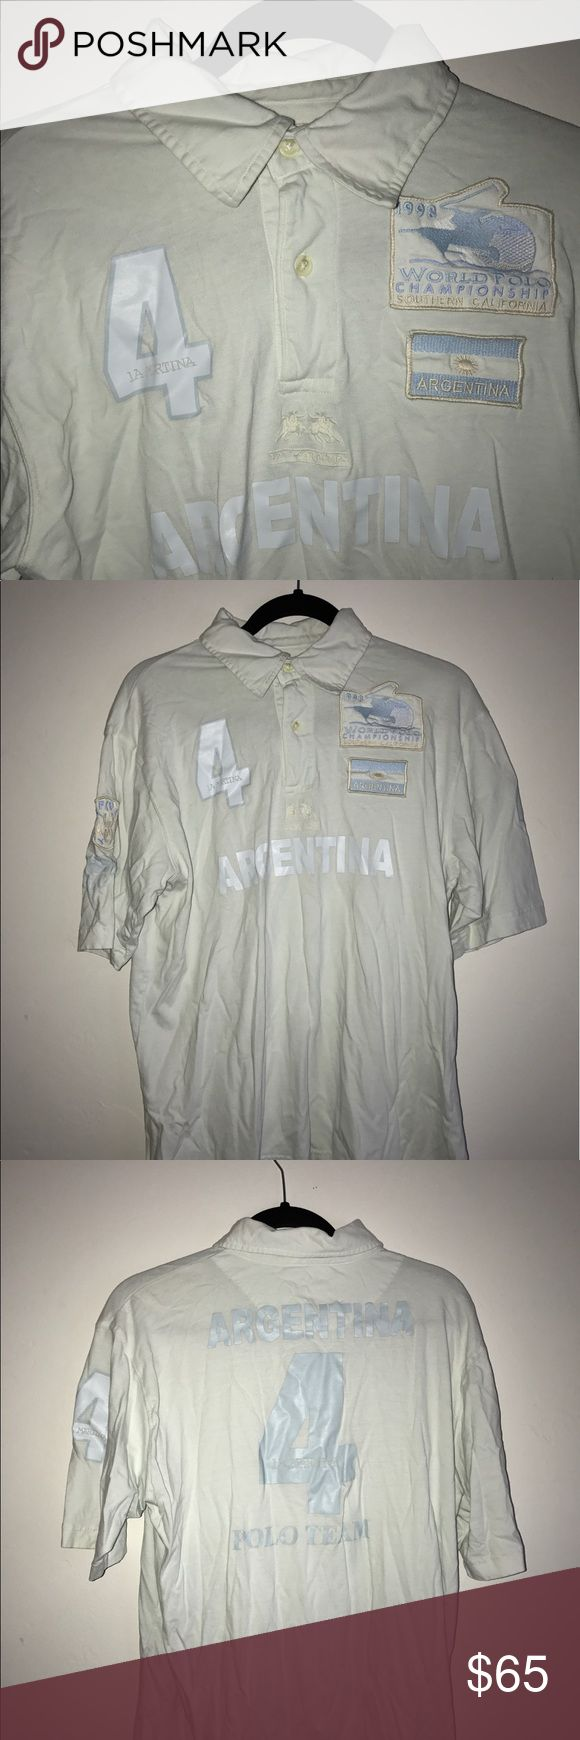 VINTAGE 1998 La Martina Polo Jersey Argentina Team 100 % Authentic Vintage Jersey from 1998 Polo world championship in Southern California! Excellent condition, no rips, holes or stains. Size XXL but runs small more like L or XL La Martina  Shirts Polos